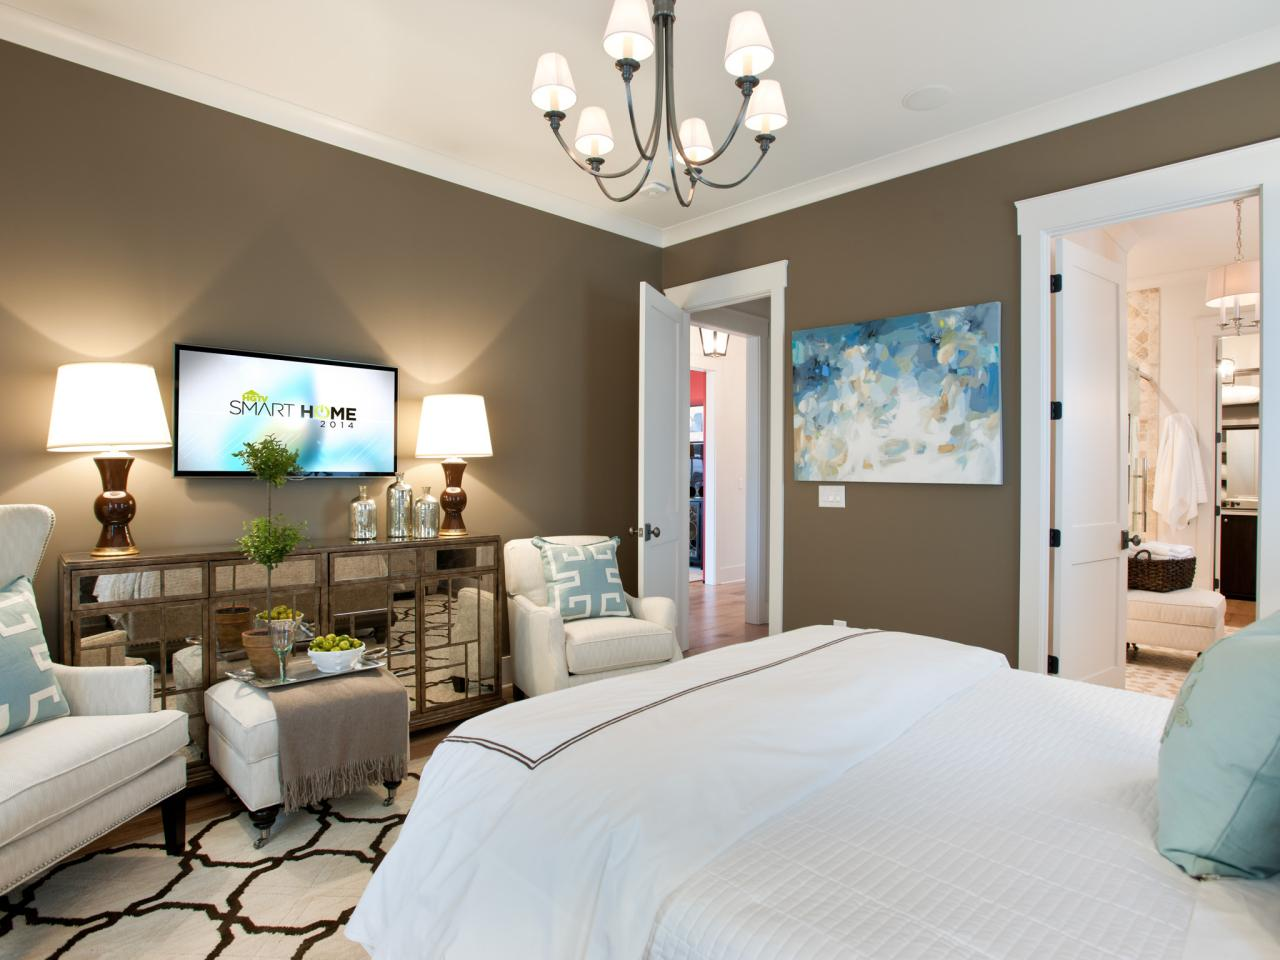 Master Bedroom From Hgtv Smart Home 2014 Hgtv Smart Home 2014 Hgtv